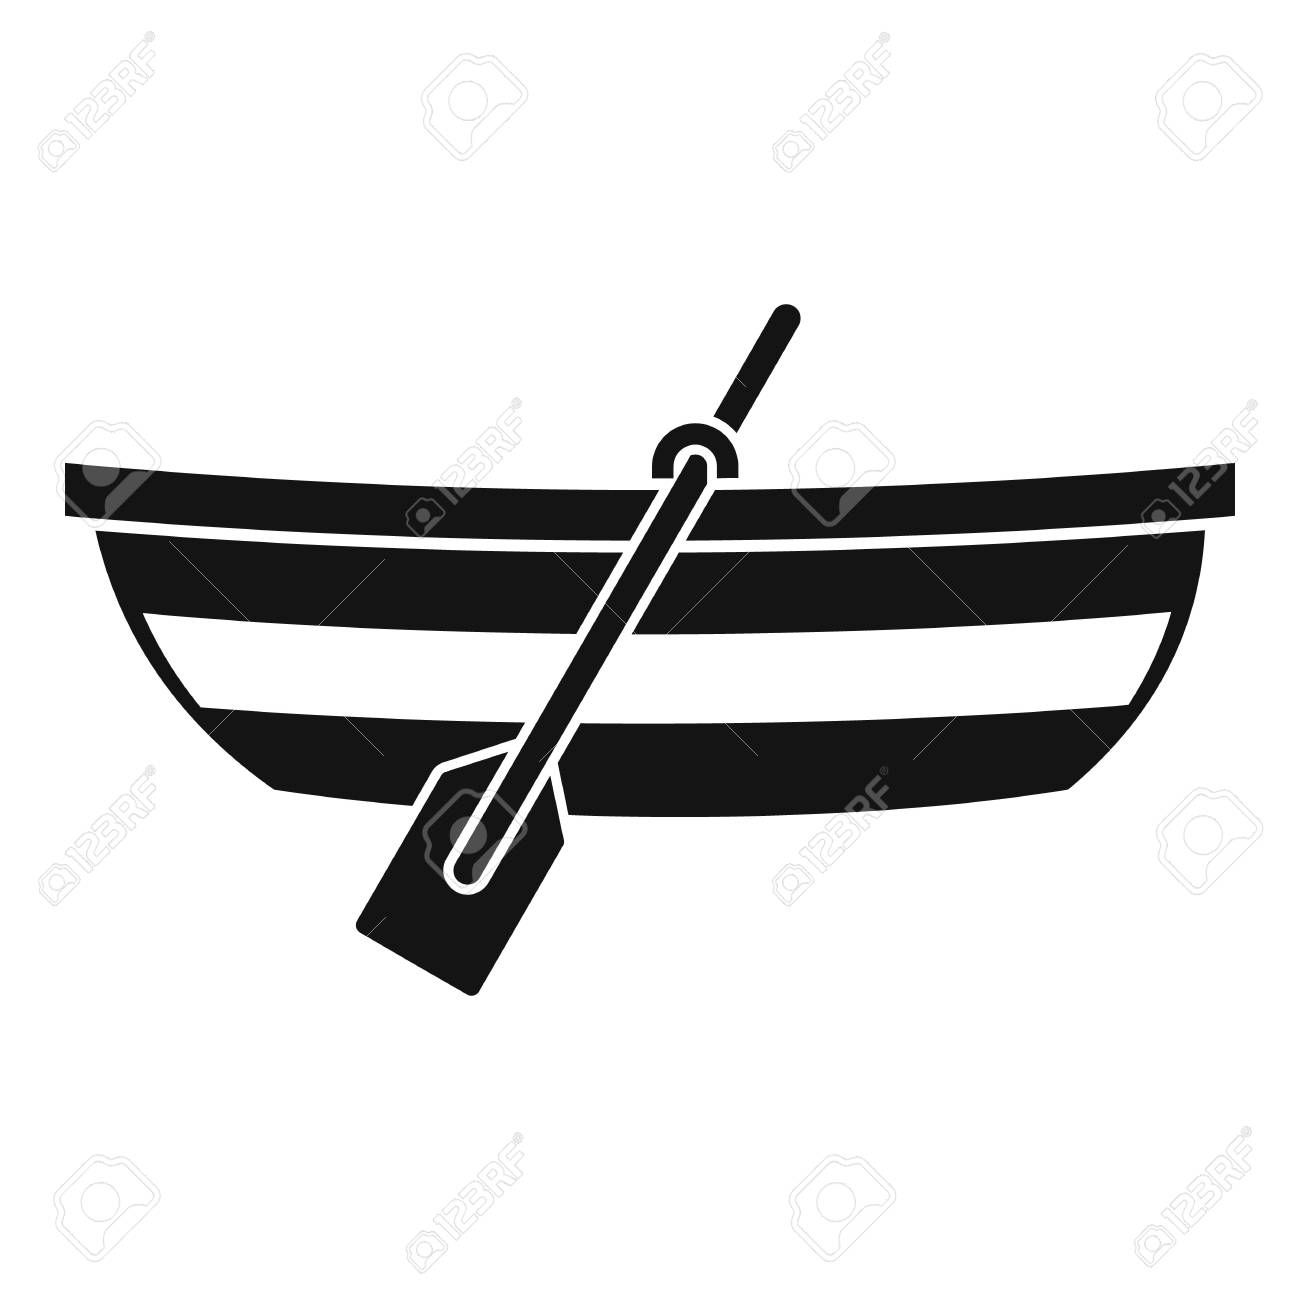 picture transparent stock Image result for synesthesia. Vector boat simple